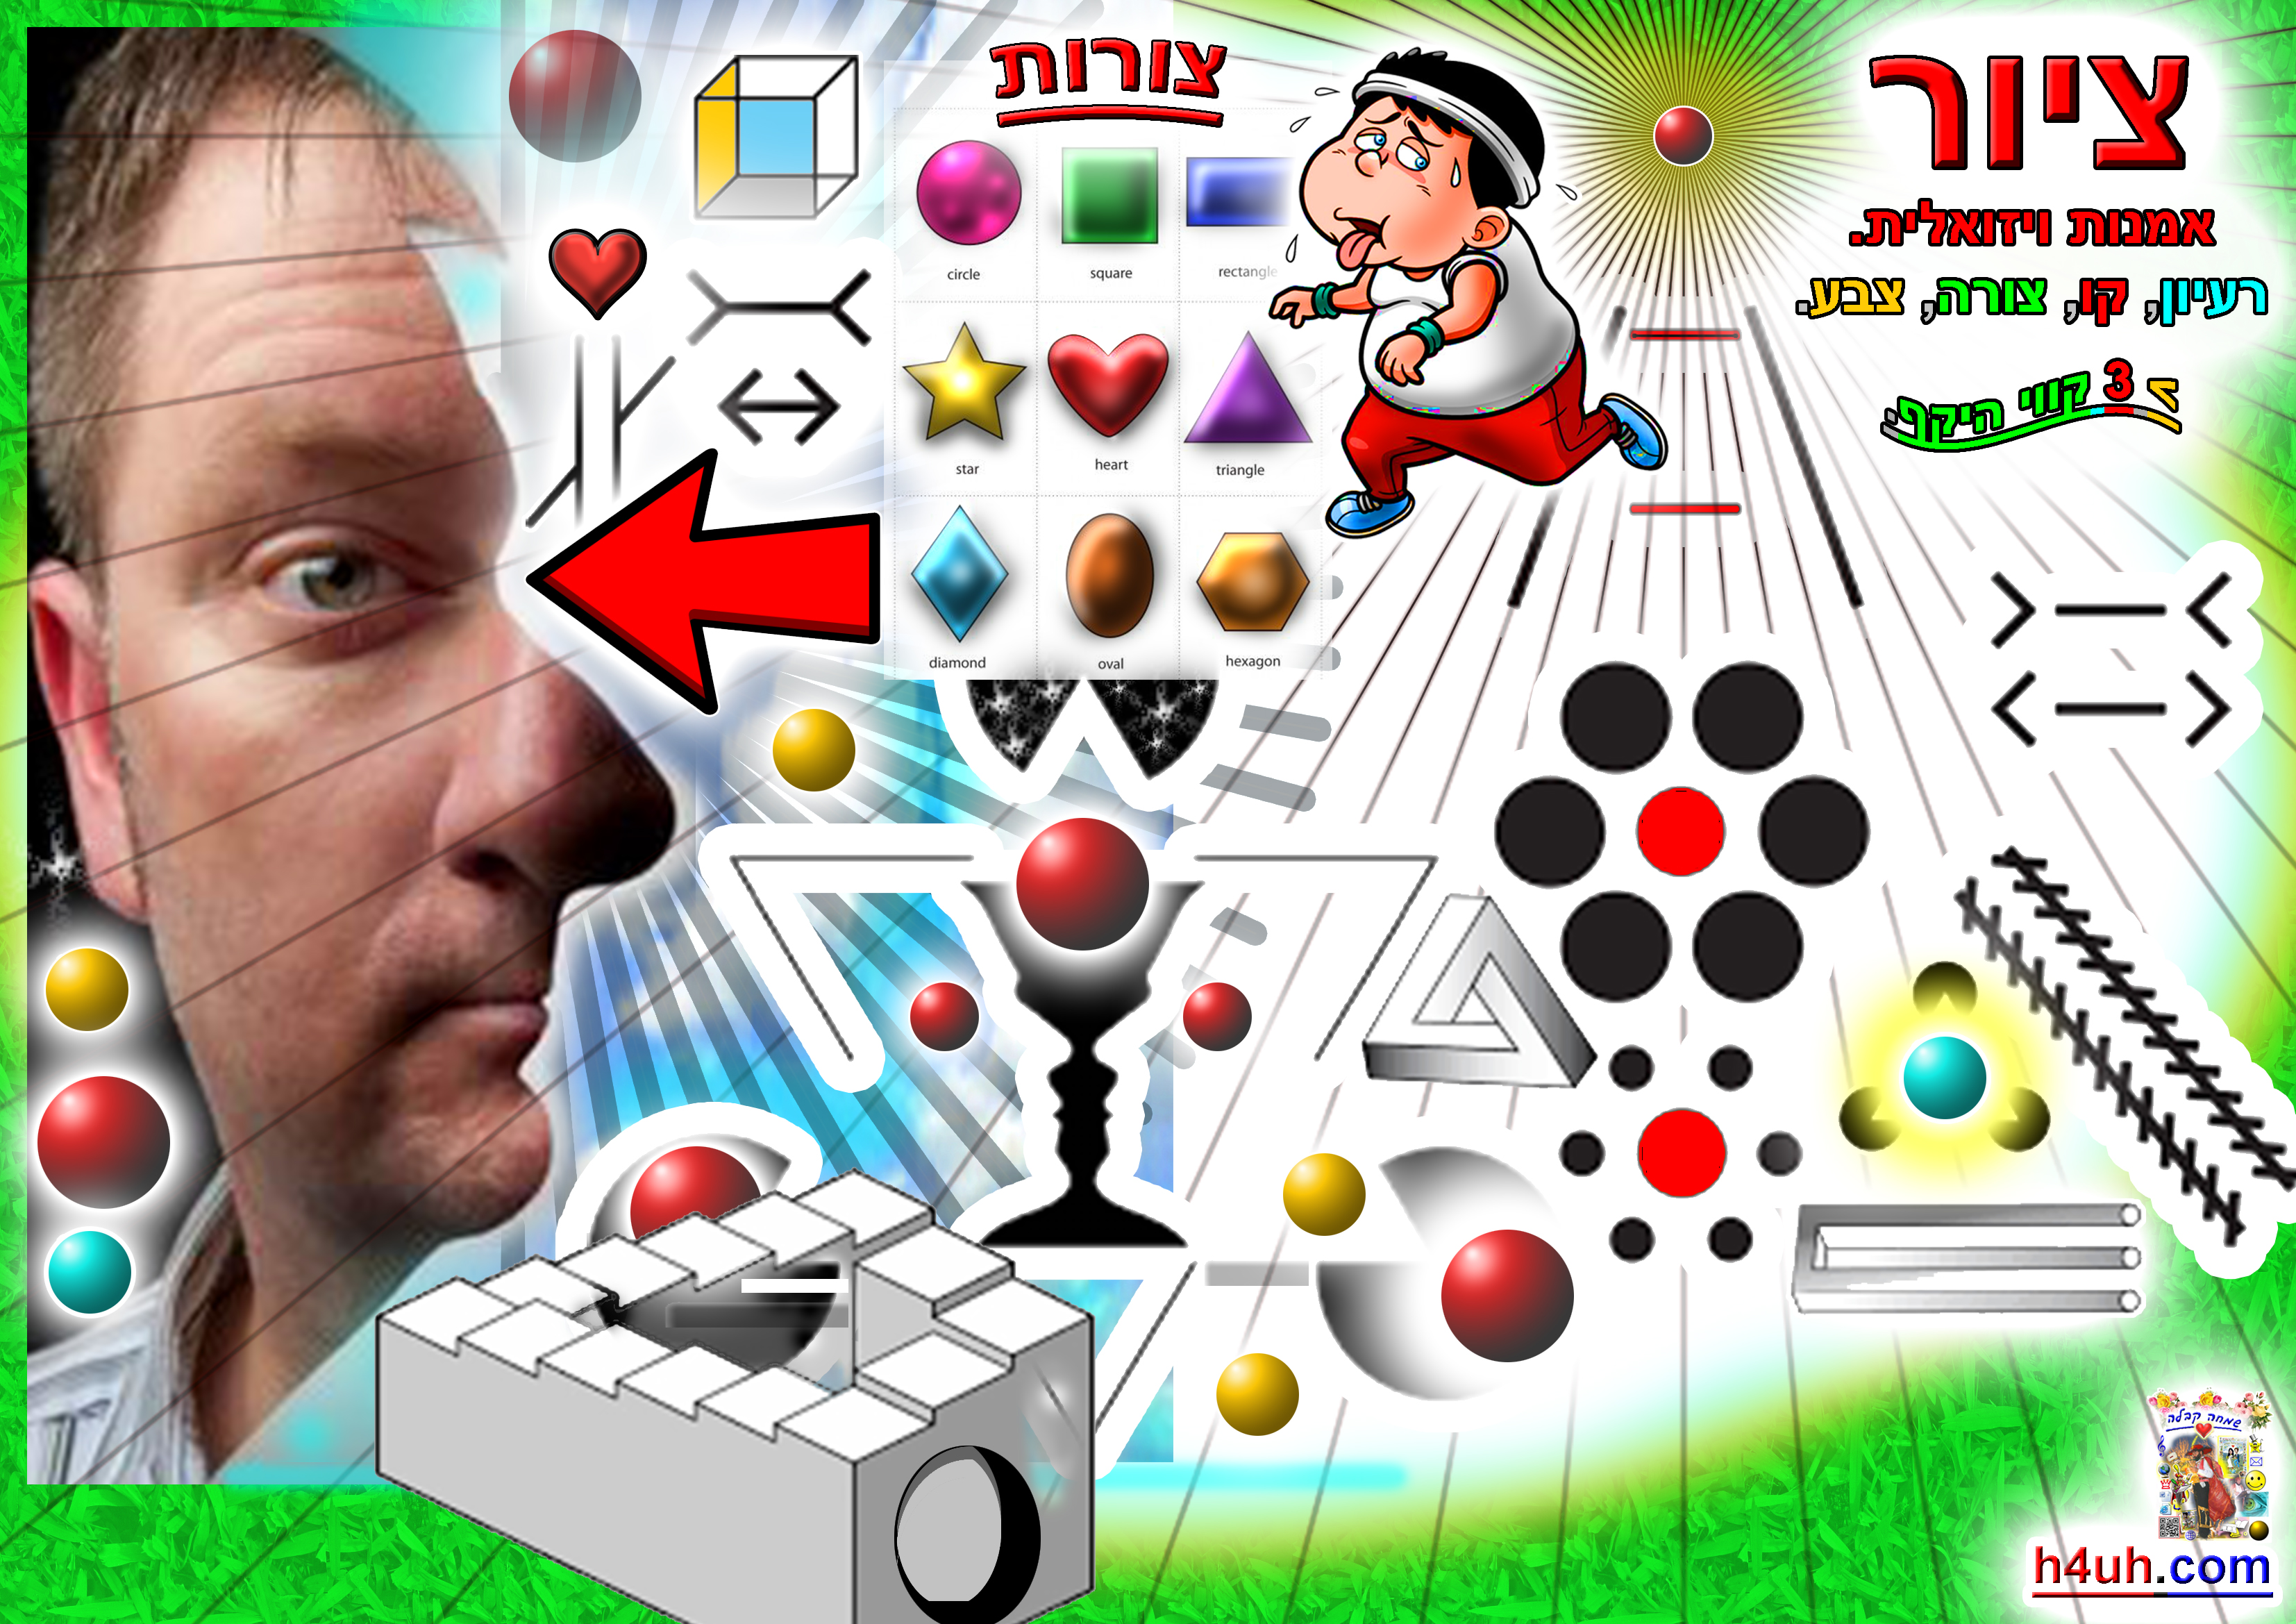 art;tutorial;drawing;painting;study;Learning;teaching;teacher;training;poster;colors;idea;elements;location;composition;line;shadow;tonality;optical;illusions;Kabbalah;emotions;na;ture;perspective;israel,jerusalem,spirituality,love,god,torah,kabbalah,wisdom,judaism,bible,parshat-hashavua,shabbat